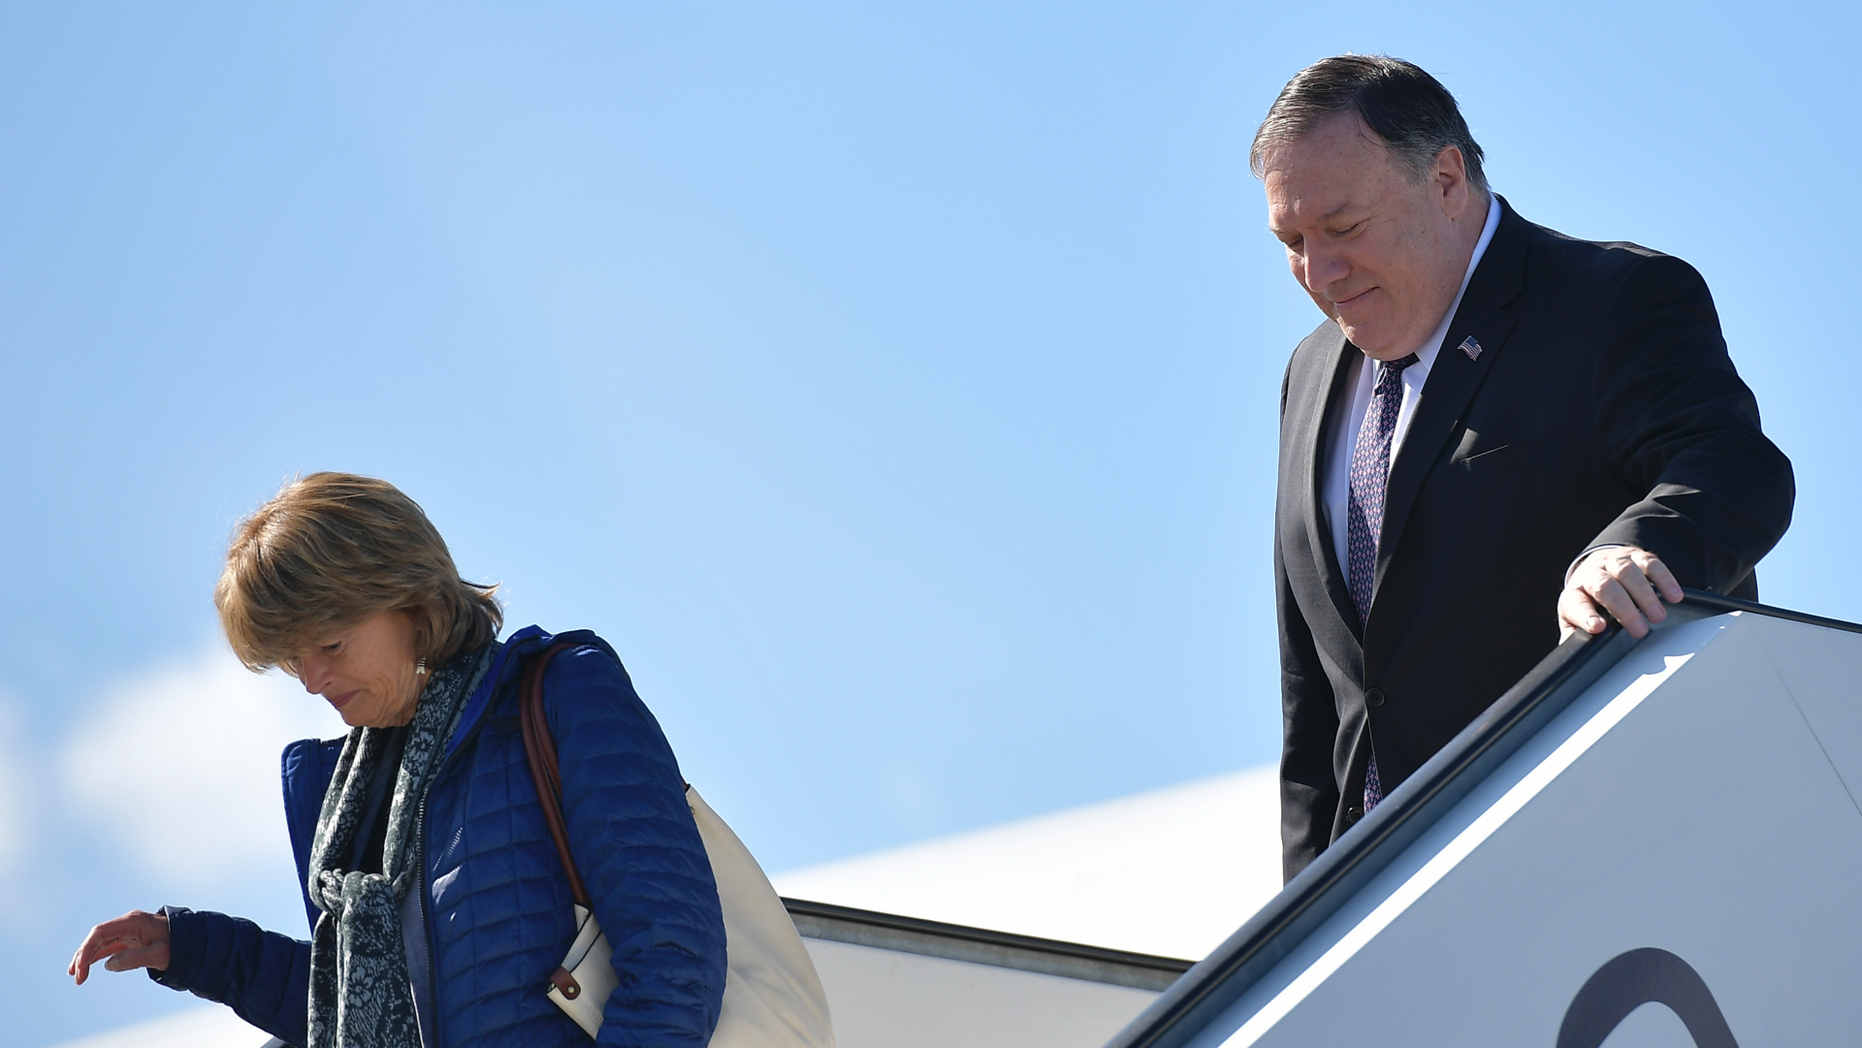 Secretary of State Mike Pompeo and Sen. Lisa Murkowski, R-Alaska, steps off a plane upon arrival in Rovaniemi, Finland, Monday, May 6, 2019. (Mandel Ngan/Pool Photo via AP)